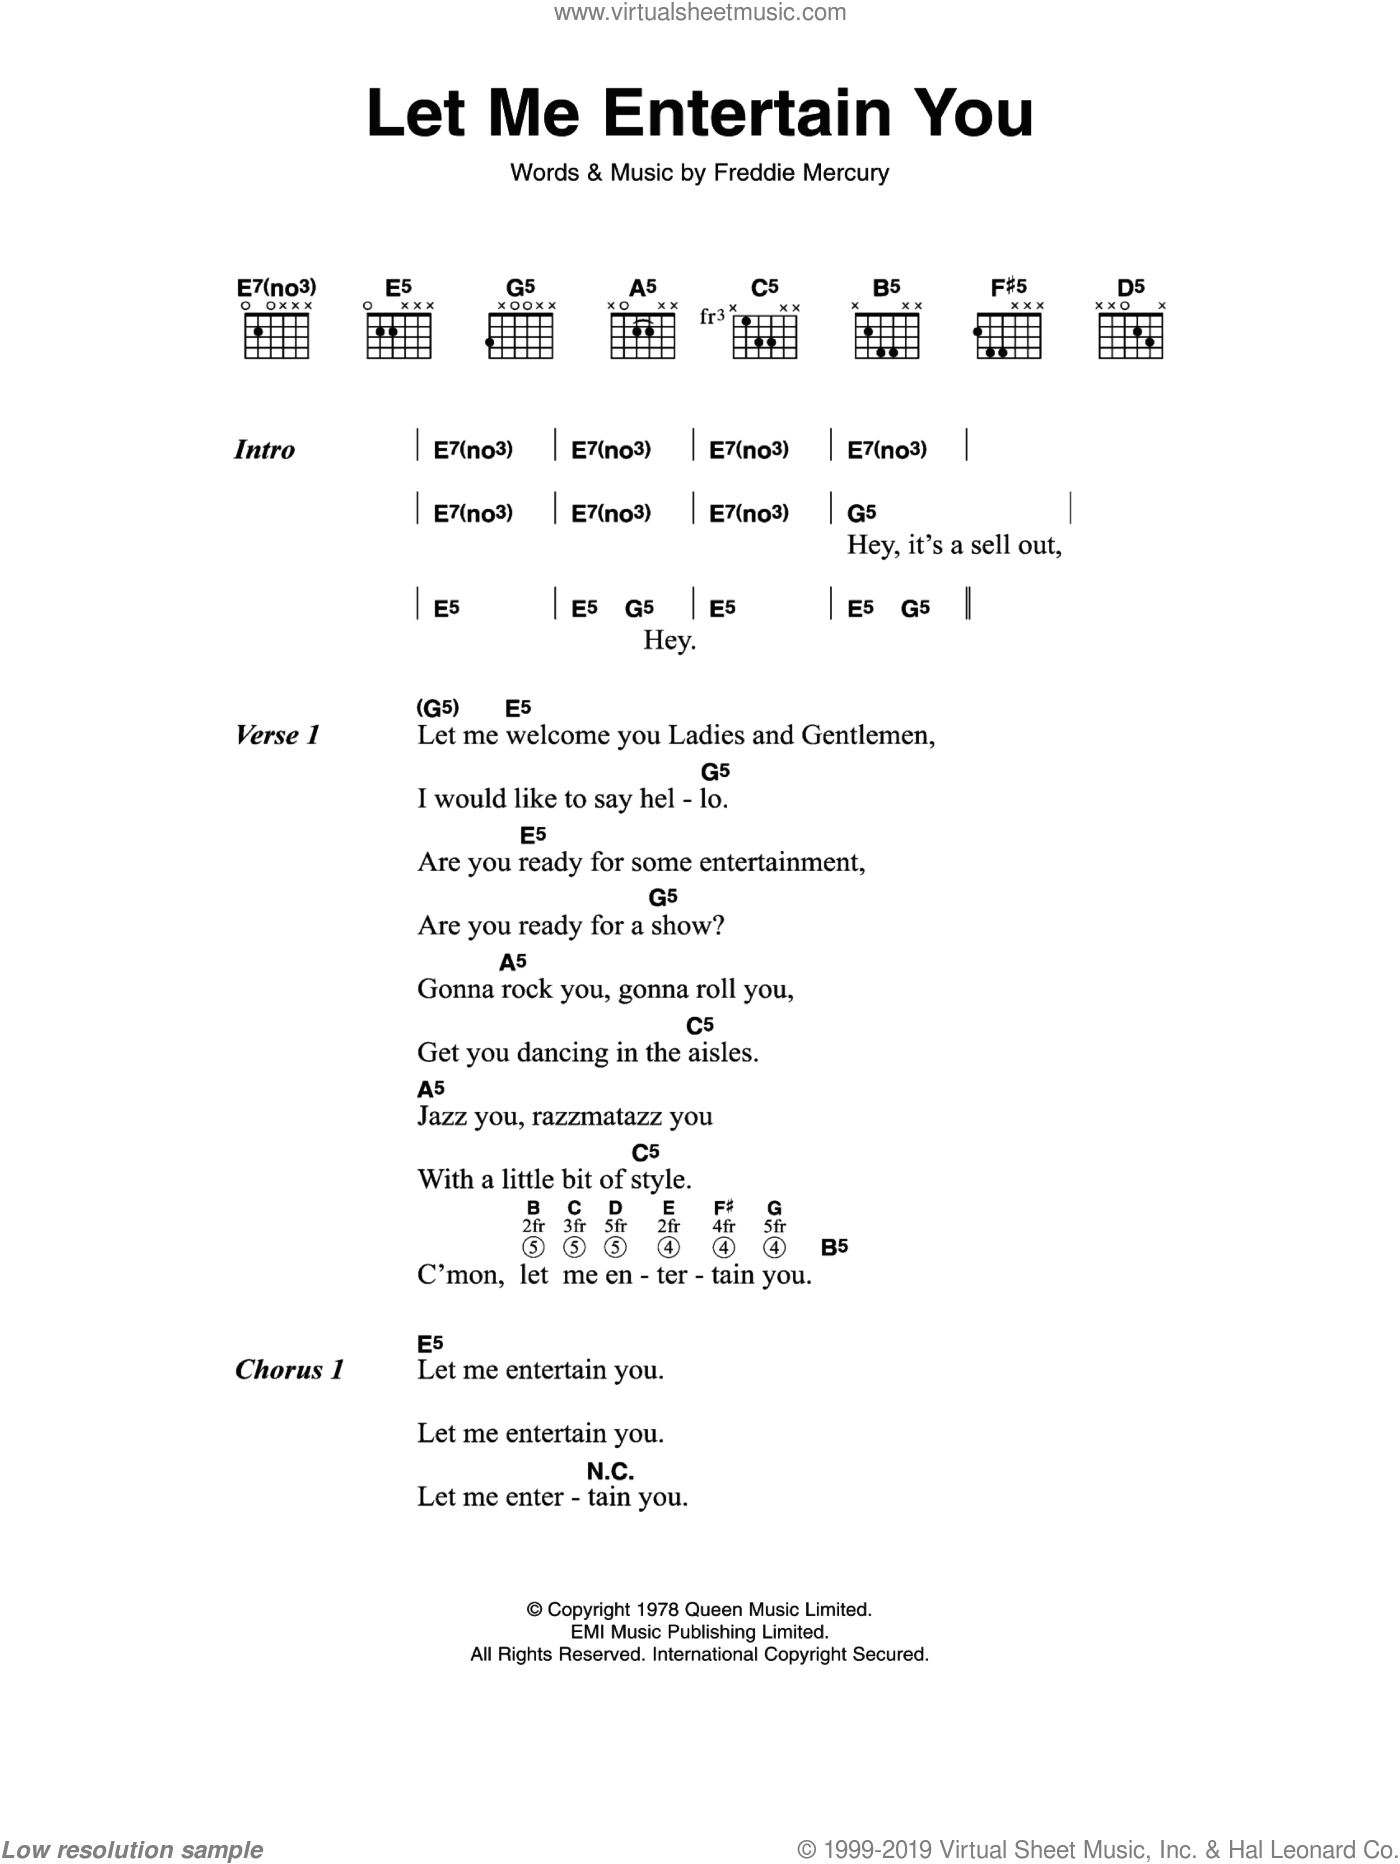 Let Me Entertain You sheet music for guitar (chords) by Frederick Mercury